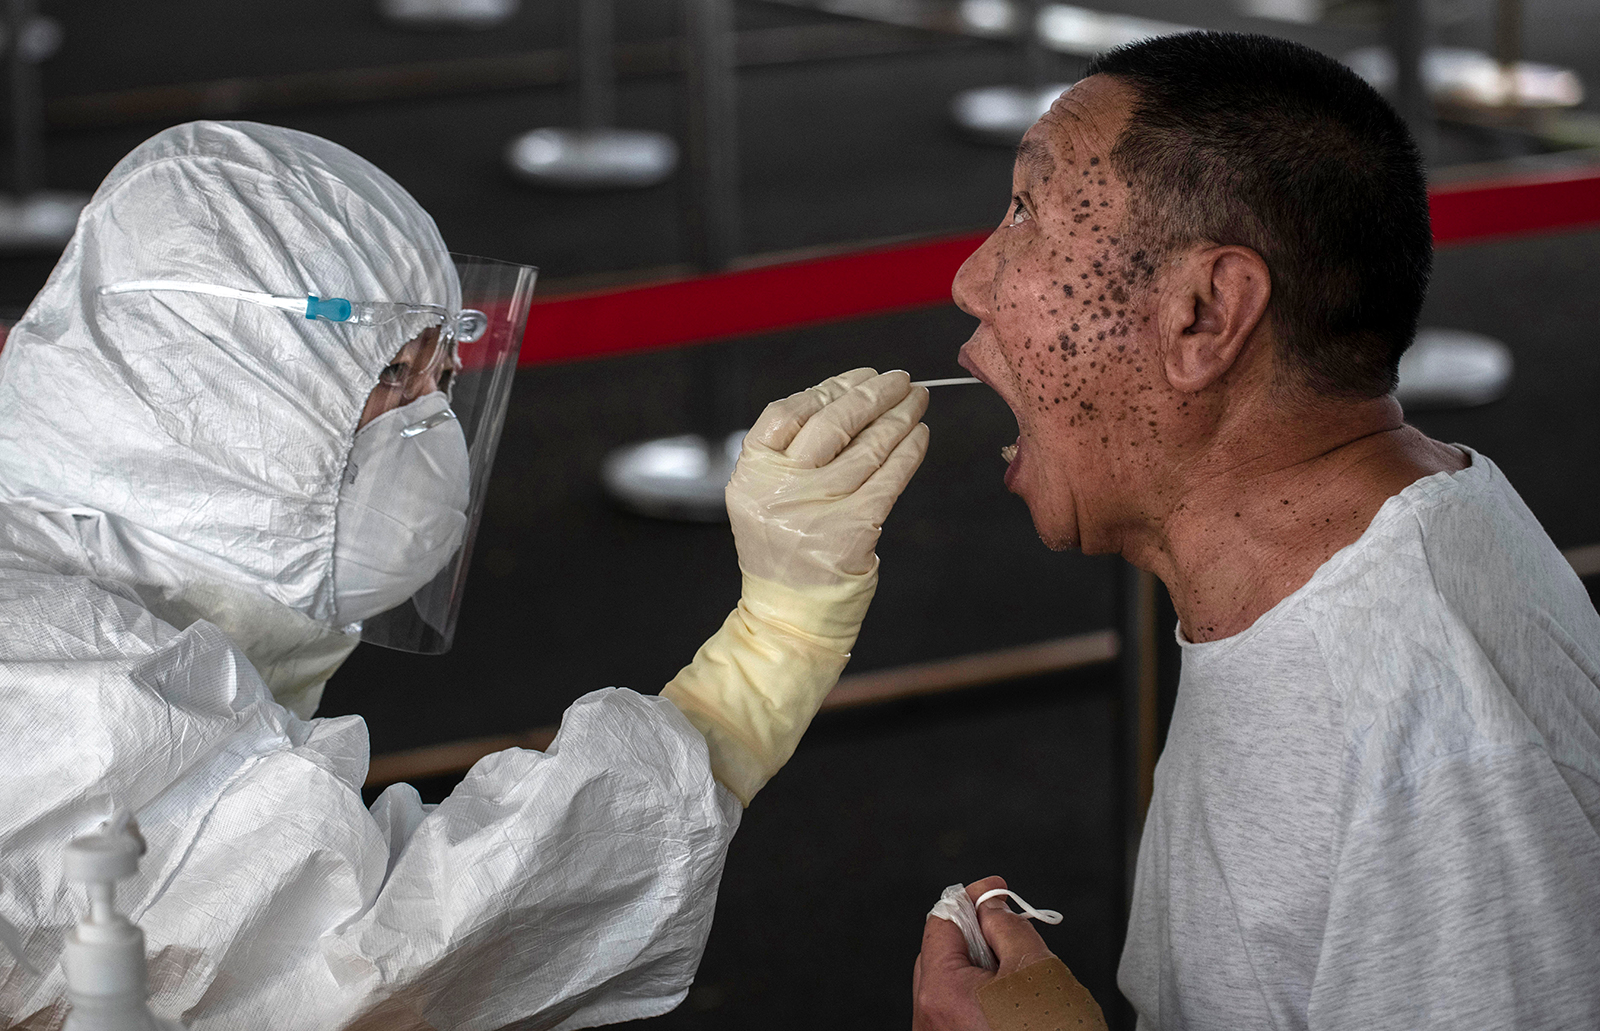 An epidemic control worker wears a protective suit as they perform a nucleic acid swab test for Covid-19 on June 24, in Beijing.